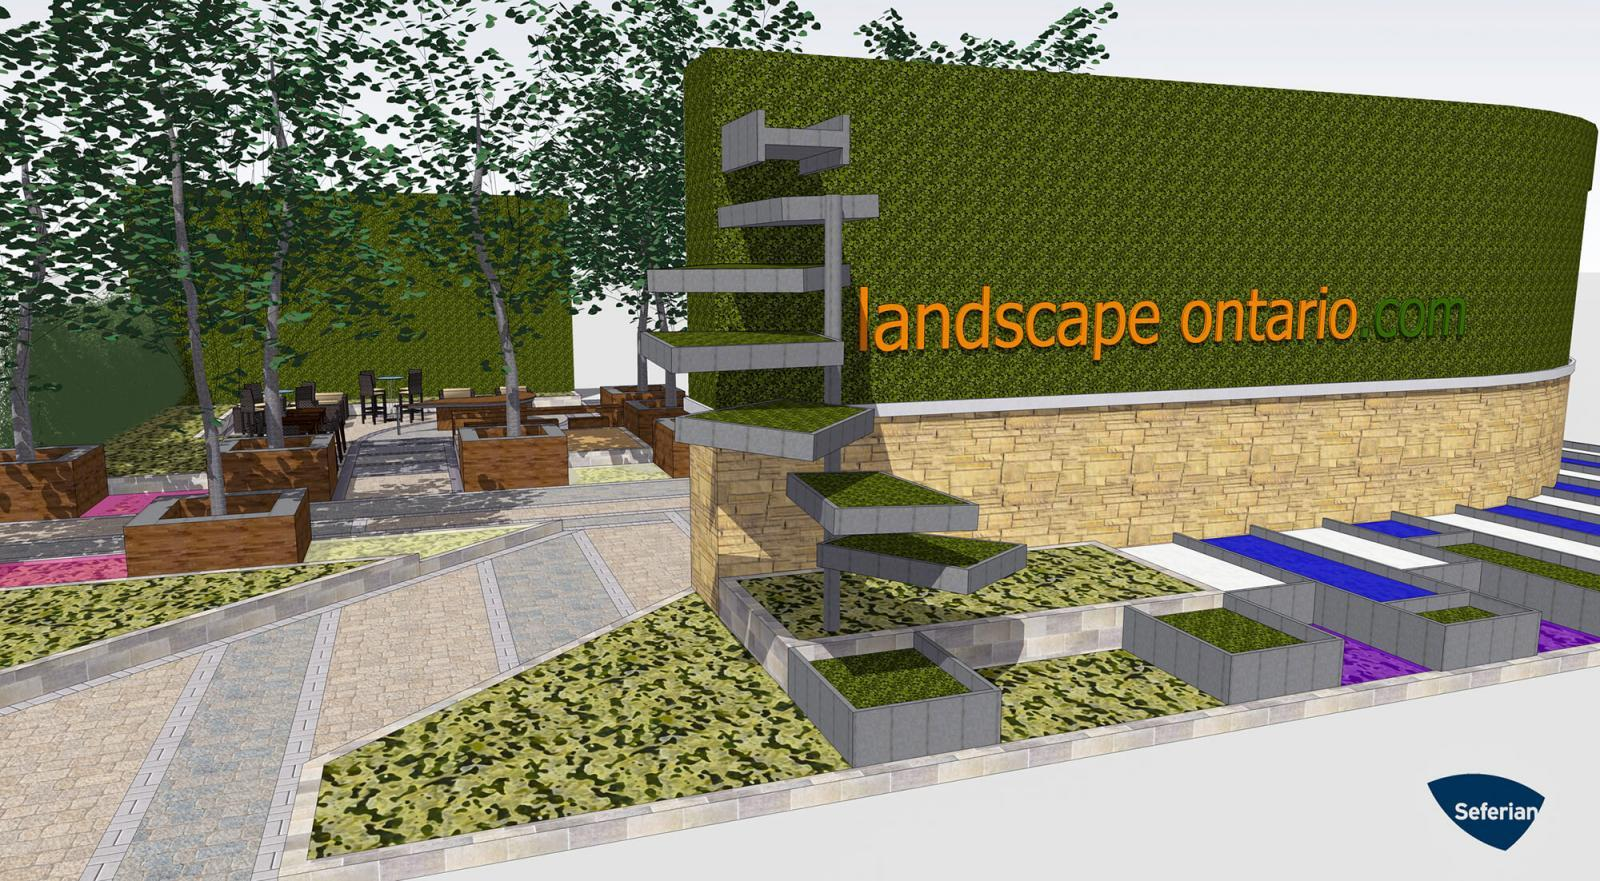 Those attending Canada Blooms this year will enter through Landscape Ontario's Green for Life garden.